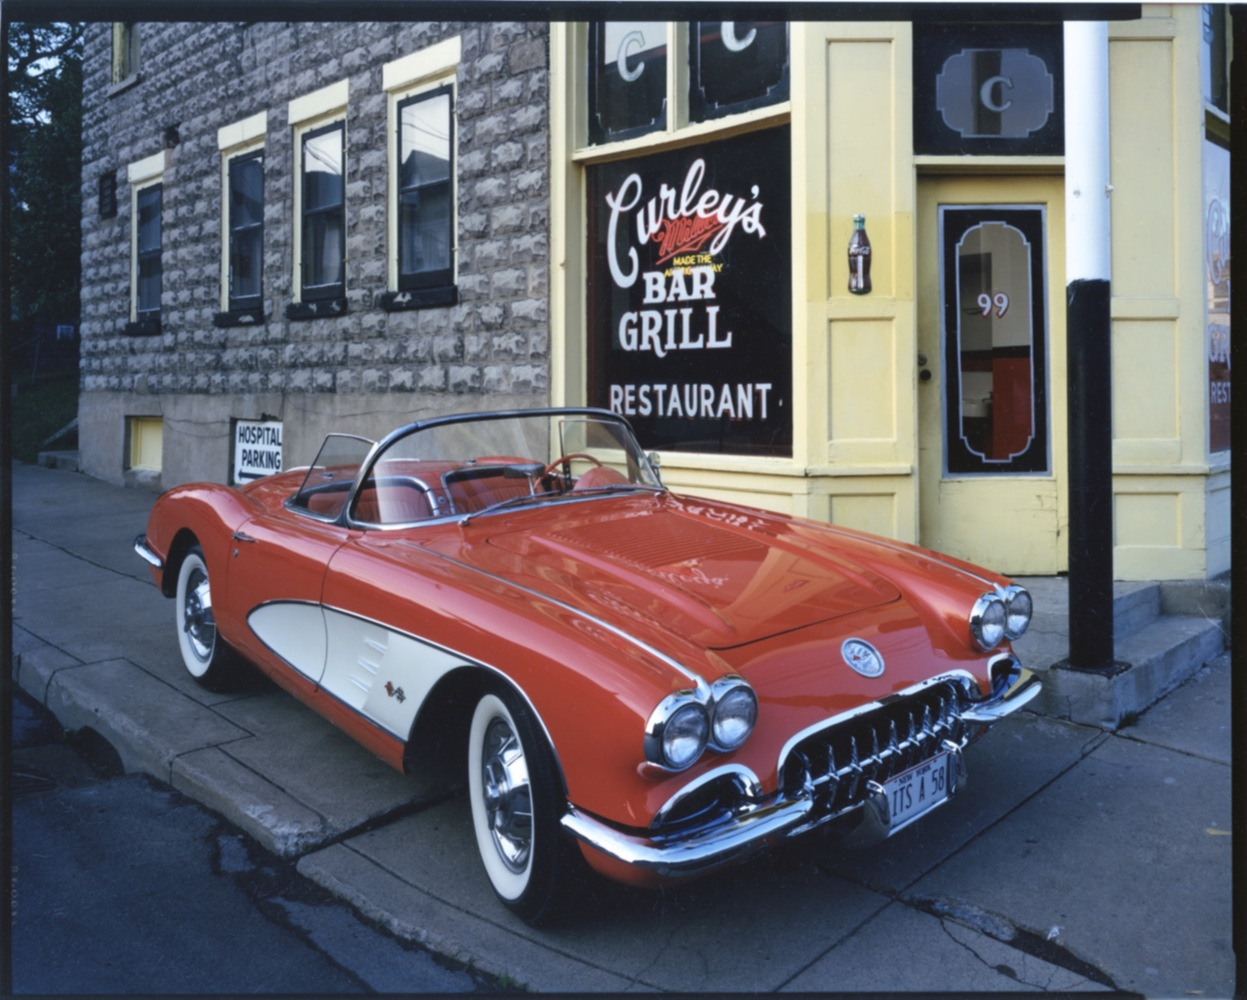 1958 Corvette, Curley's Bar and Grill, Johnson City, NY, c. 1987